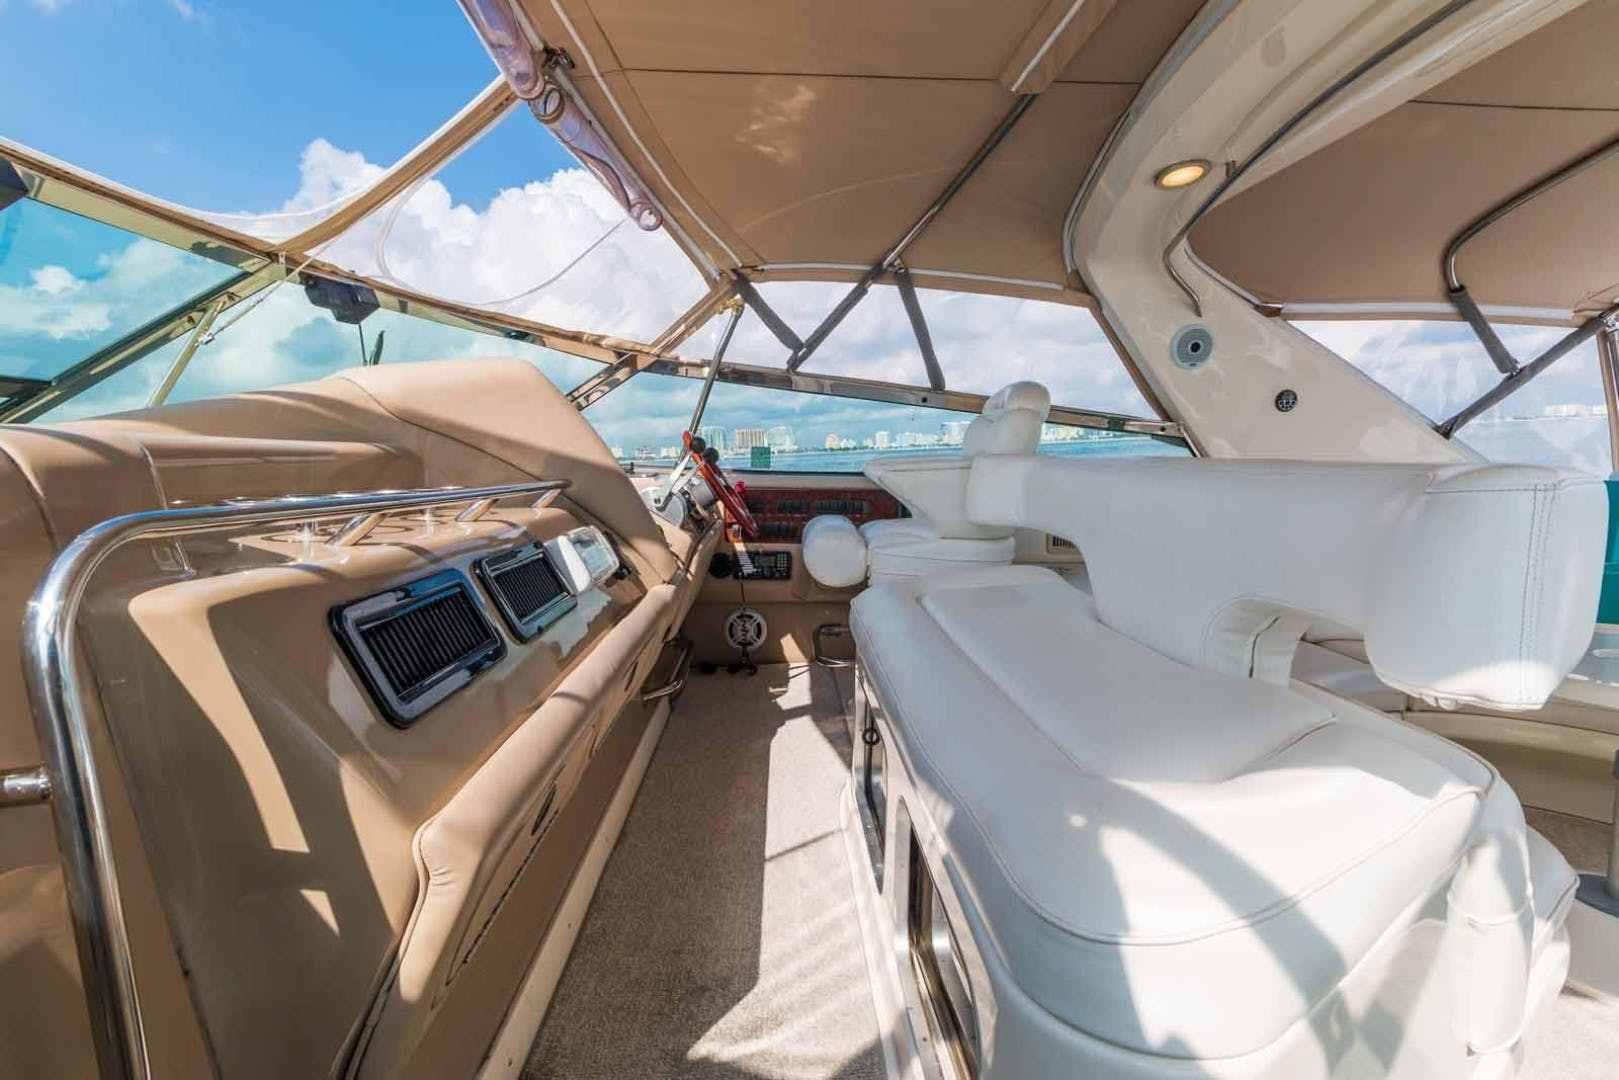 1999 Sea Ray 63' Super Sun Sport DAPHNE EXPRESS | Picture 6 of 44